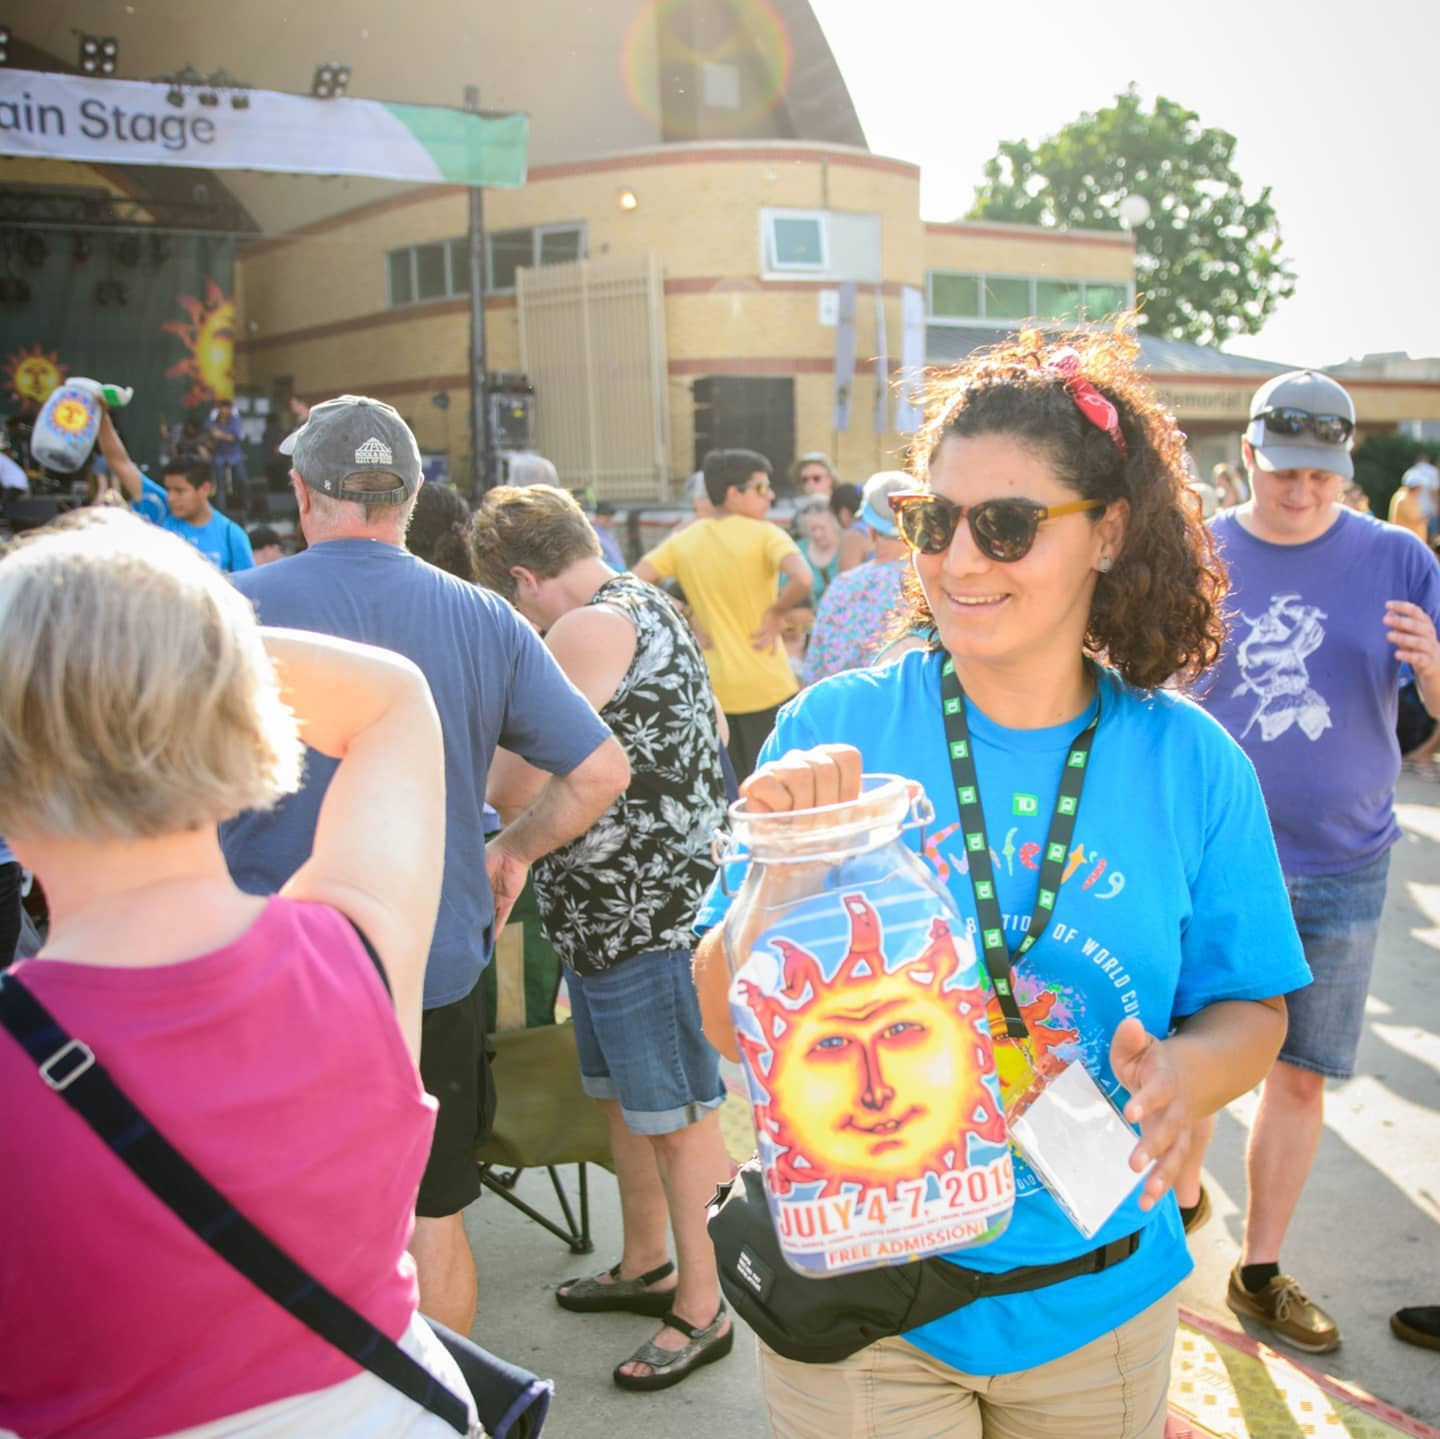 A owman in sunglasses and a ponytail wearing a blue Sunfest shirt holds out a donation container in a crowd.